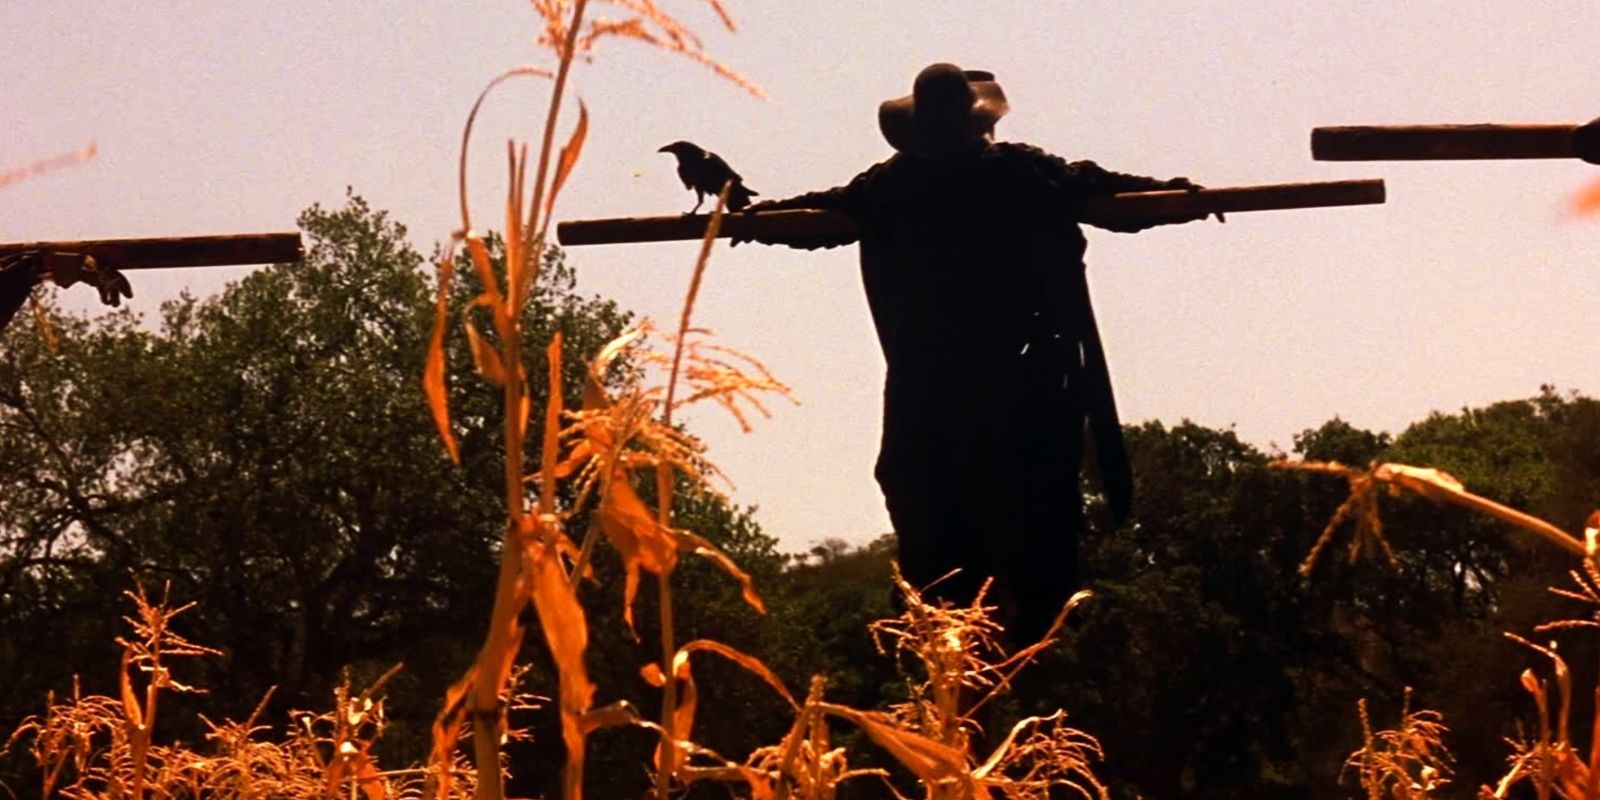 Jeepers Creepers 4 Is Happening: What To Know About The